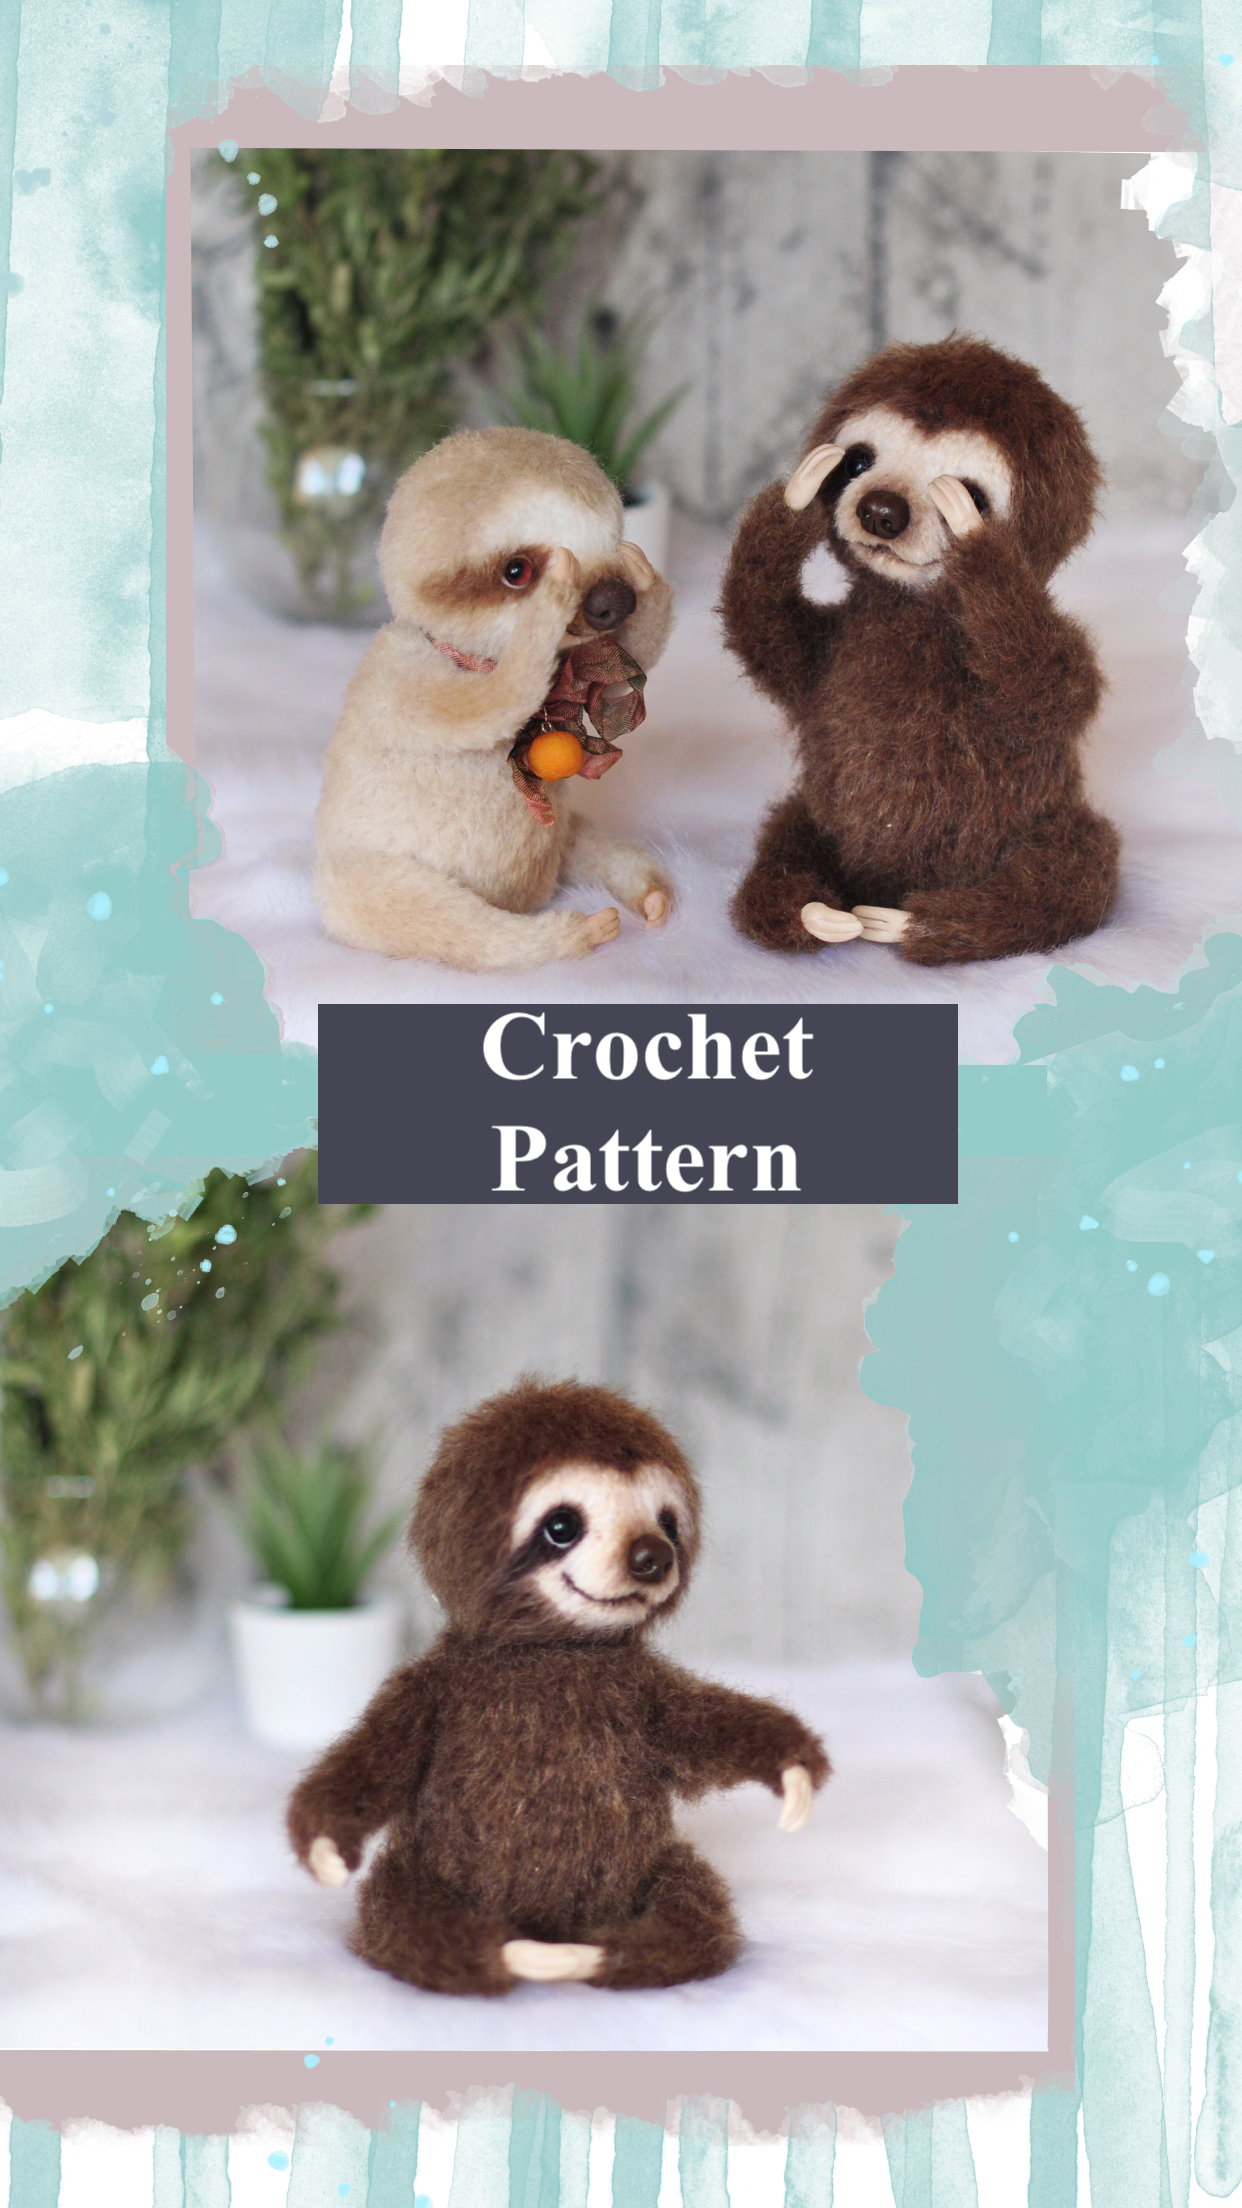 Crochet Pattern Sloth Stuffed animal pattern Amigurumi